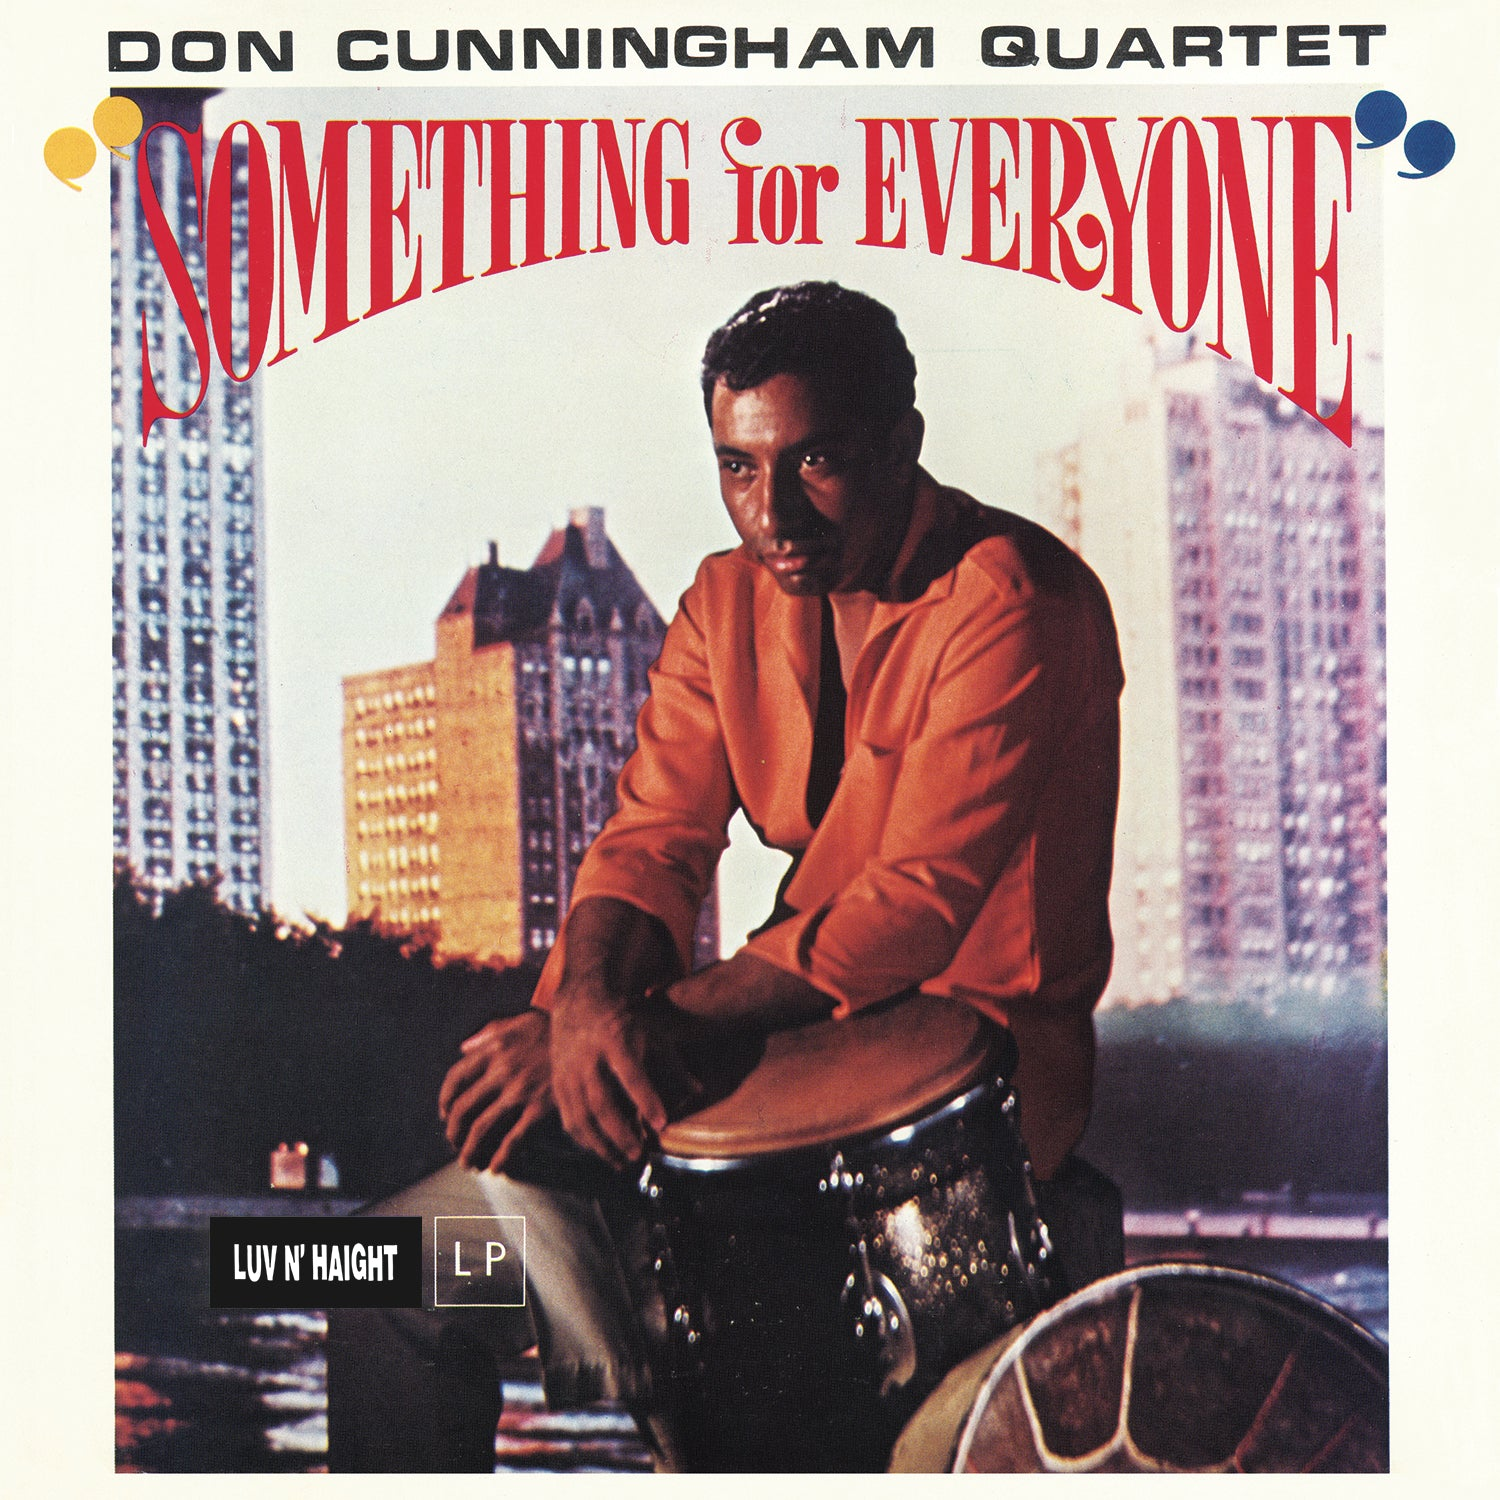 Don Cunningham - Something For Everyone (RSD 2020 Black Friday) Vinyl Record Album